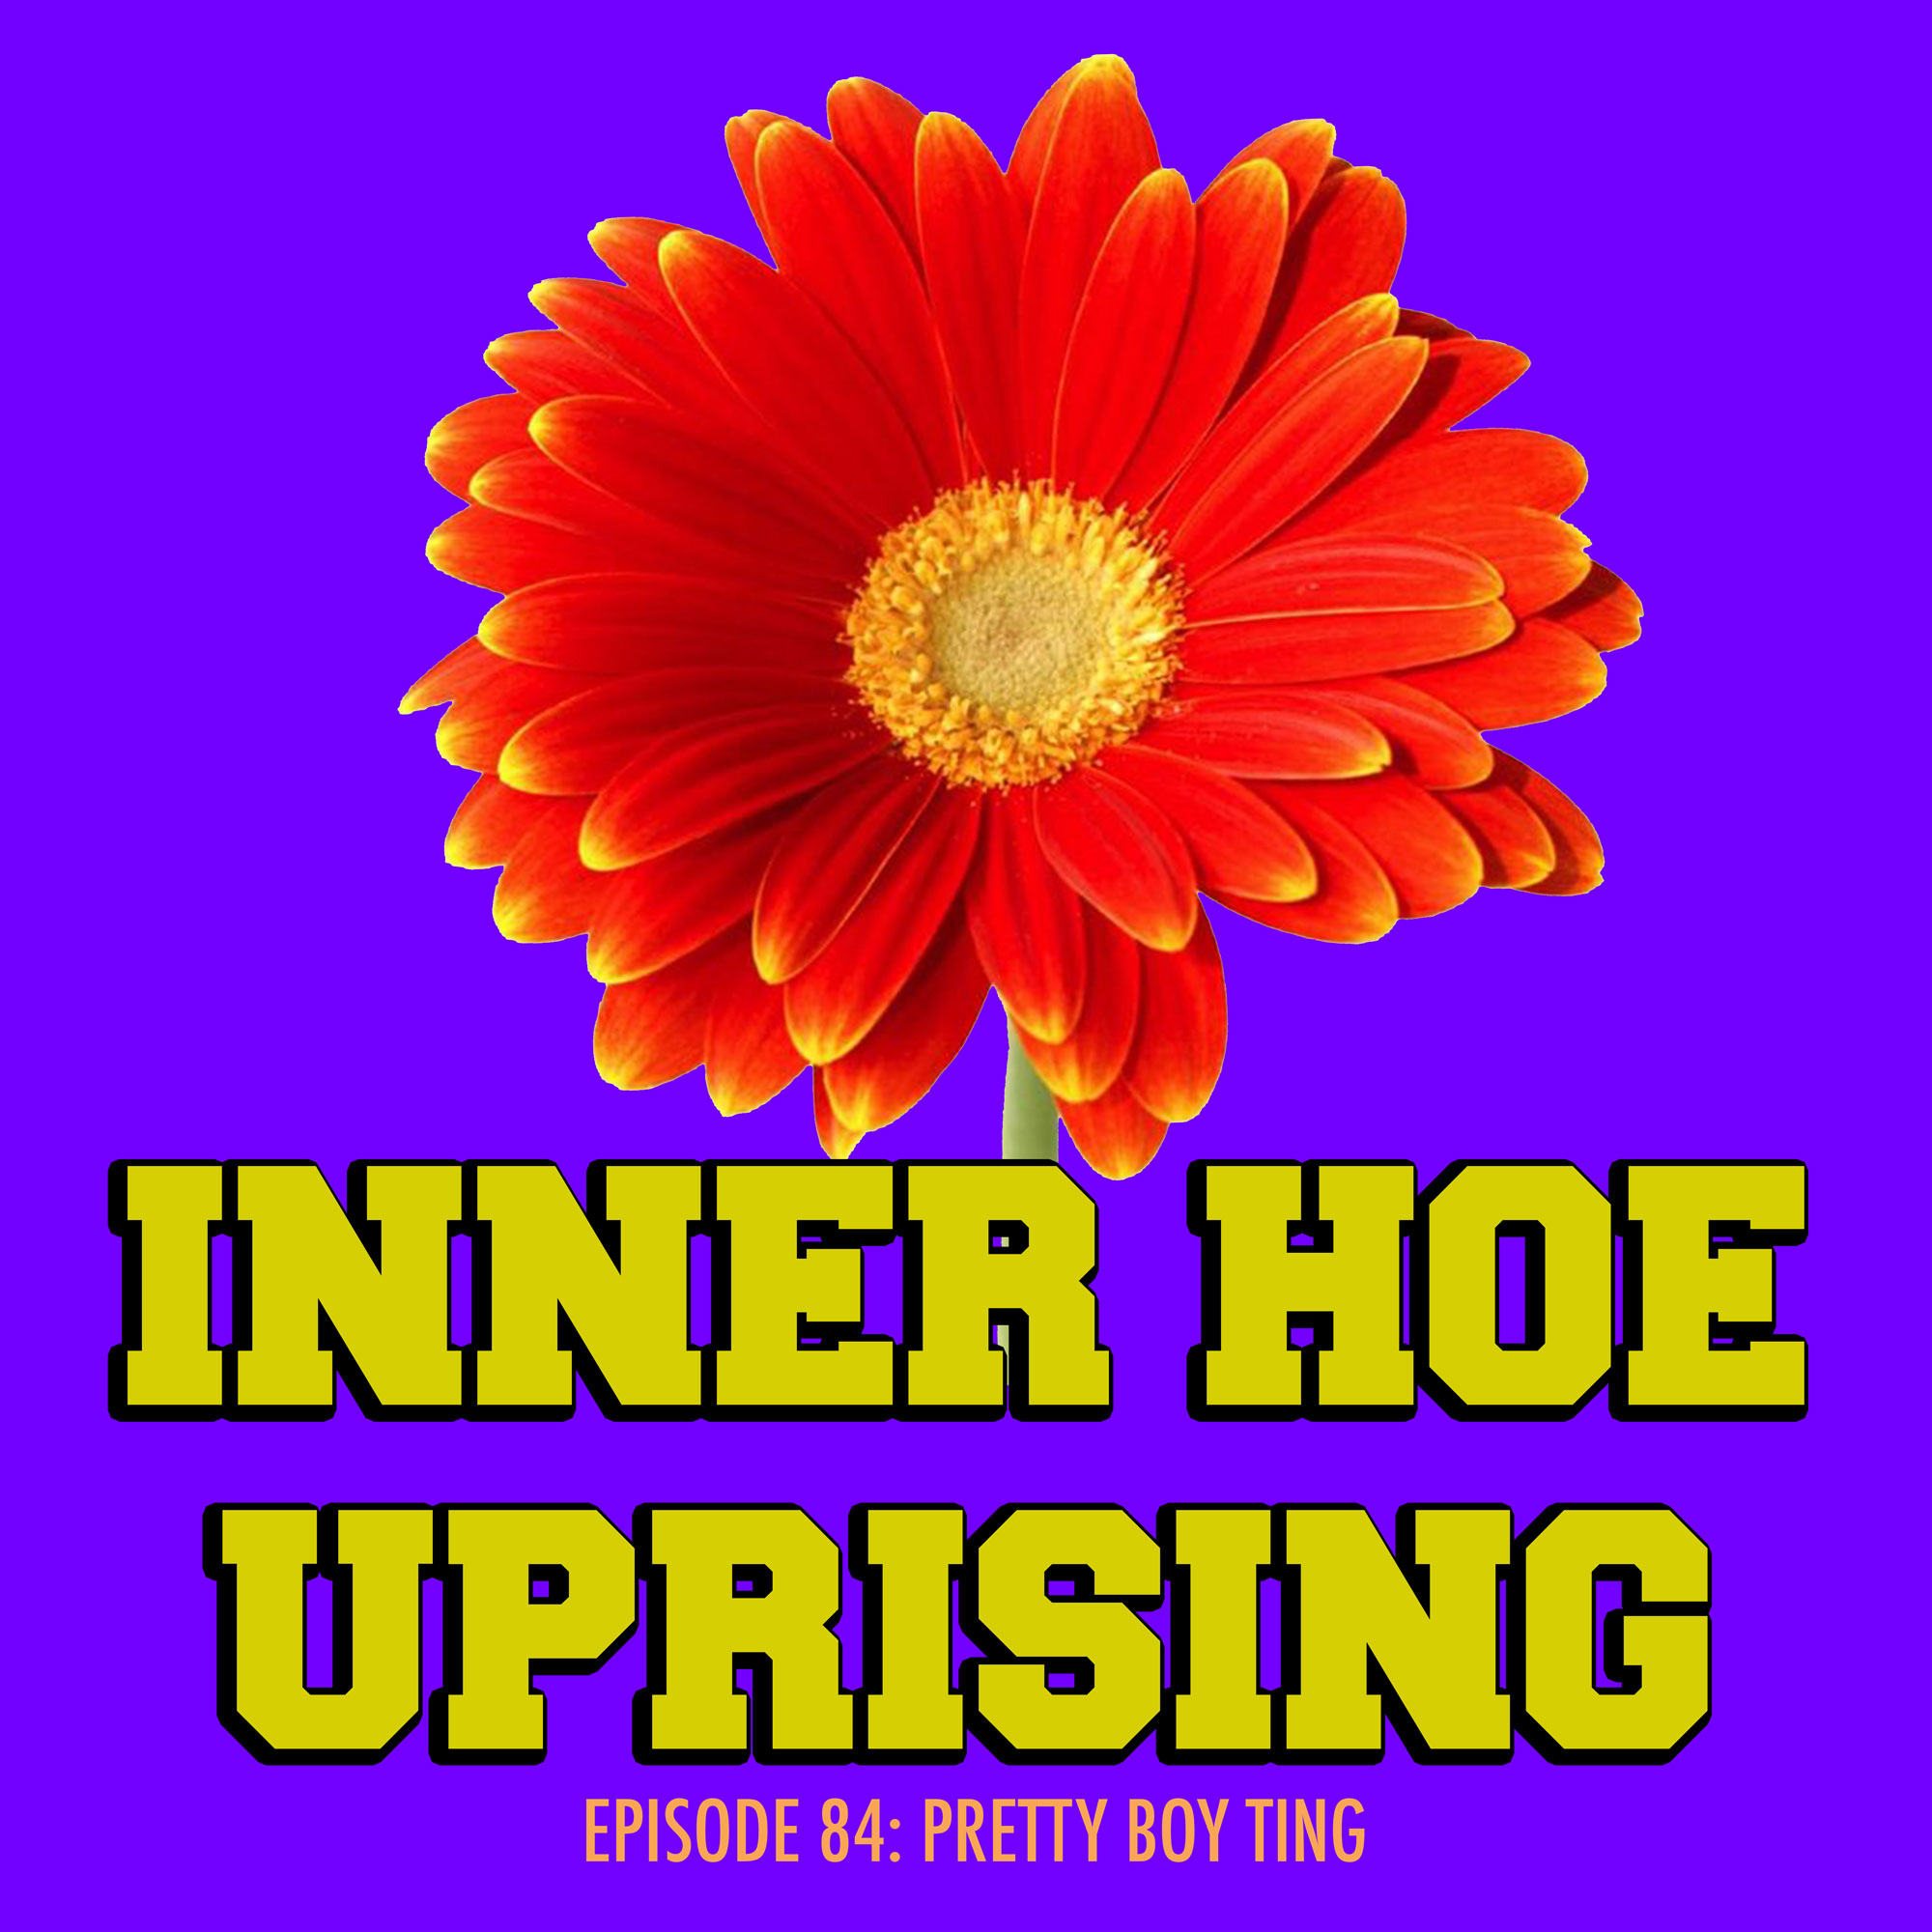 flower, pretty boy, inner hoe uprising, podcast